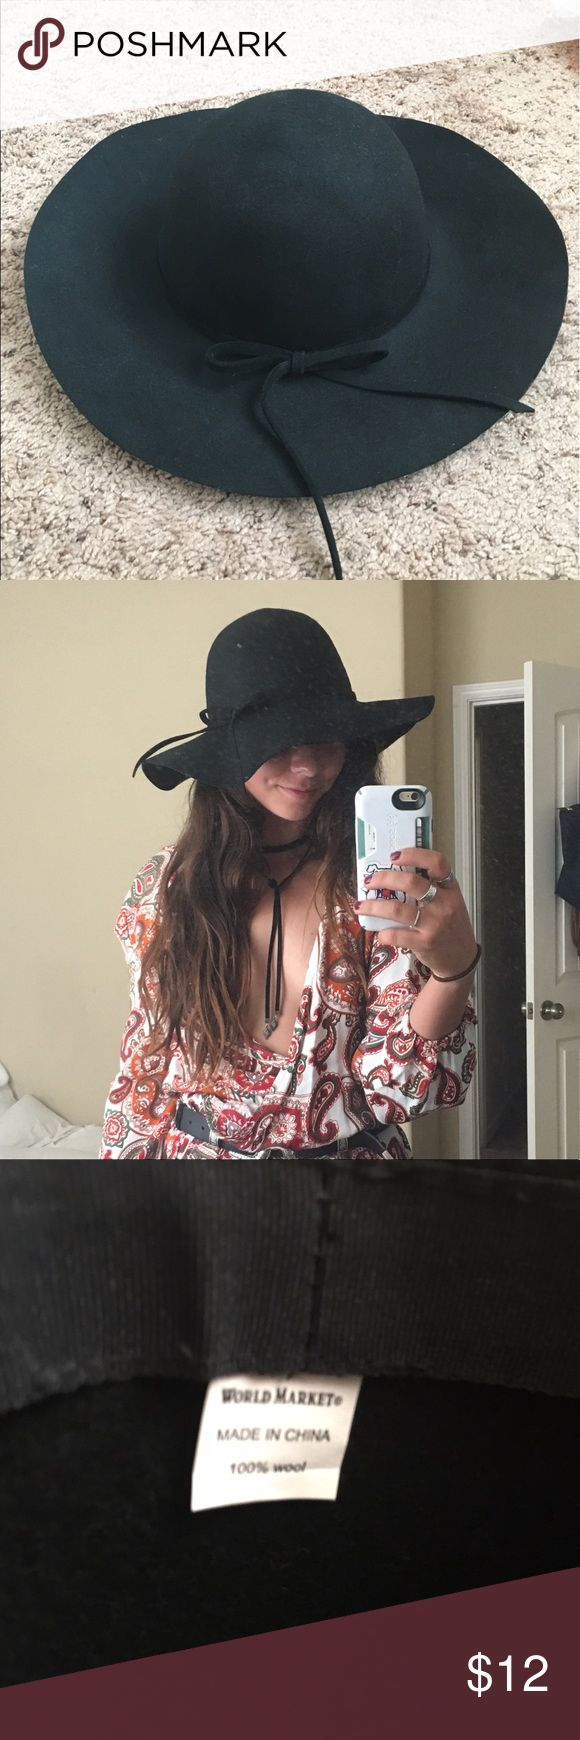 Floppy hat made from black felt with bow Floppy black hat great to pair with a summer dress or romper. world market  Accessories Hats